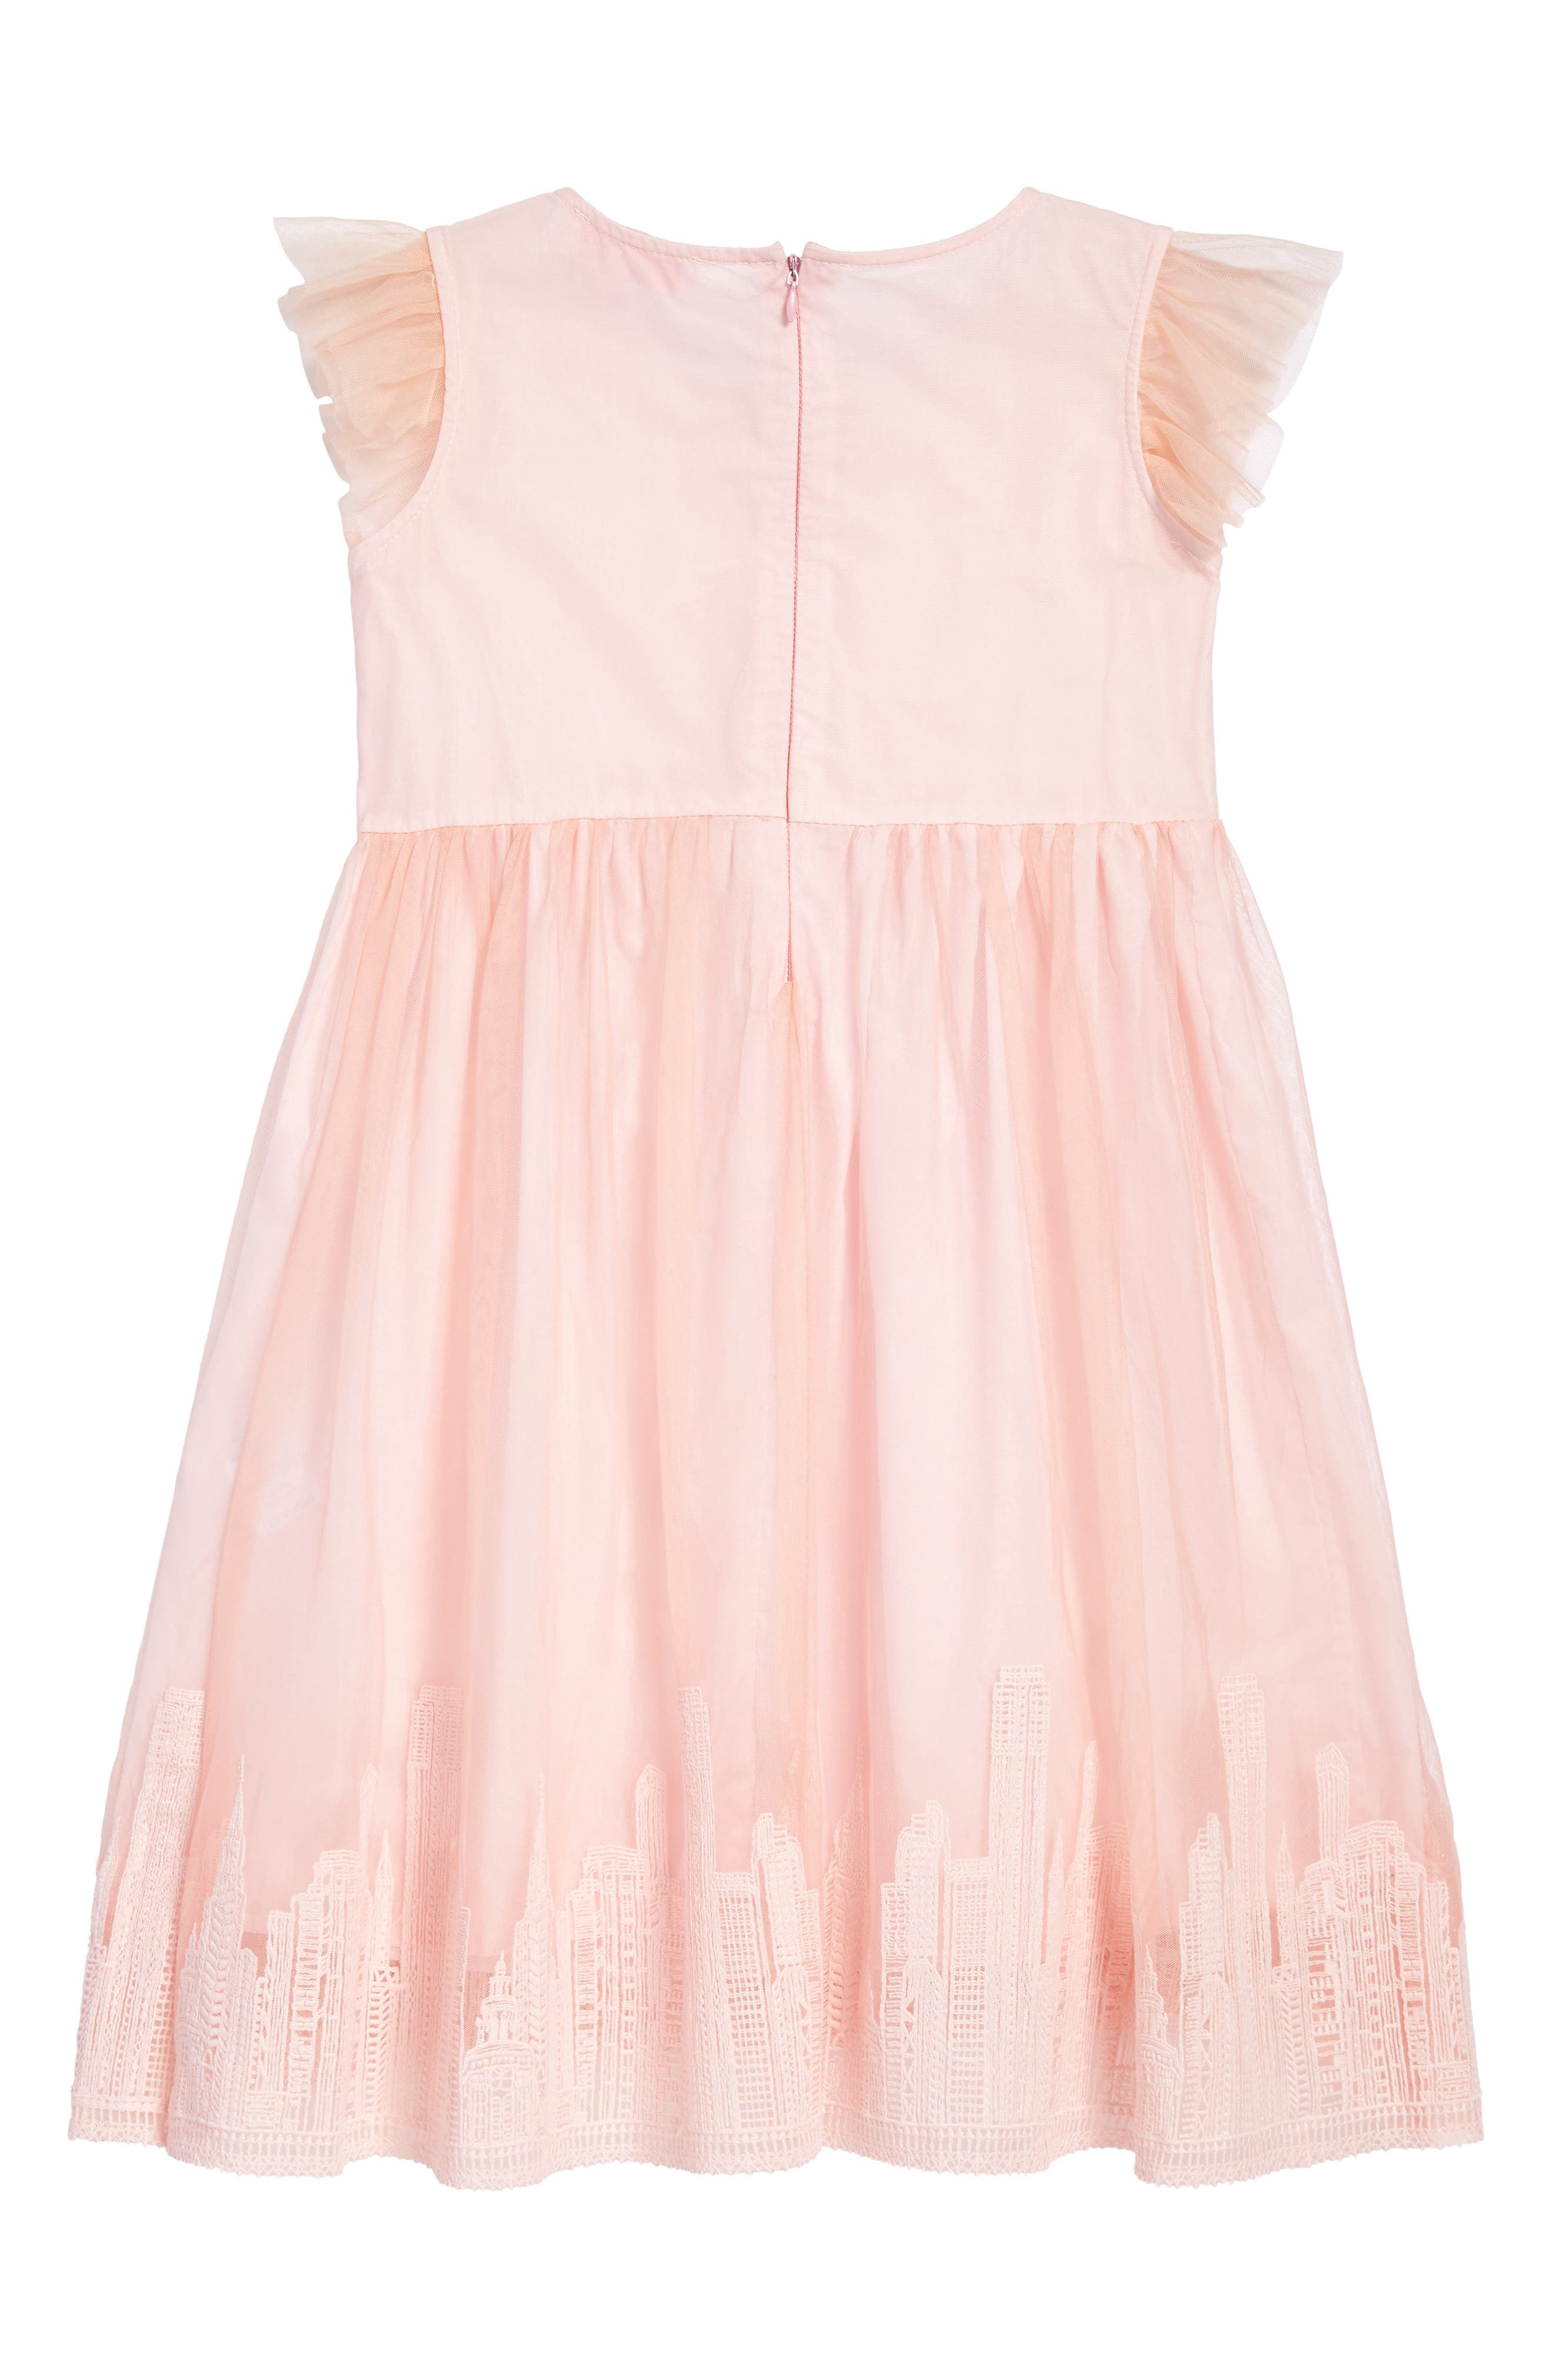 Embroidered Tulle Dress,                             Alternate thumbnail 2, color,                             Pink